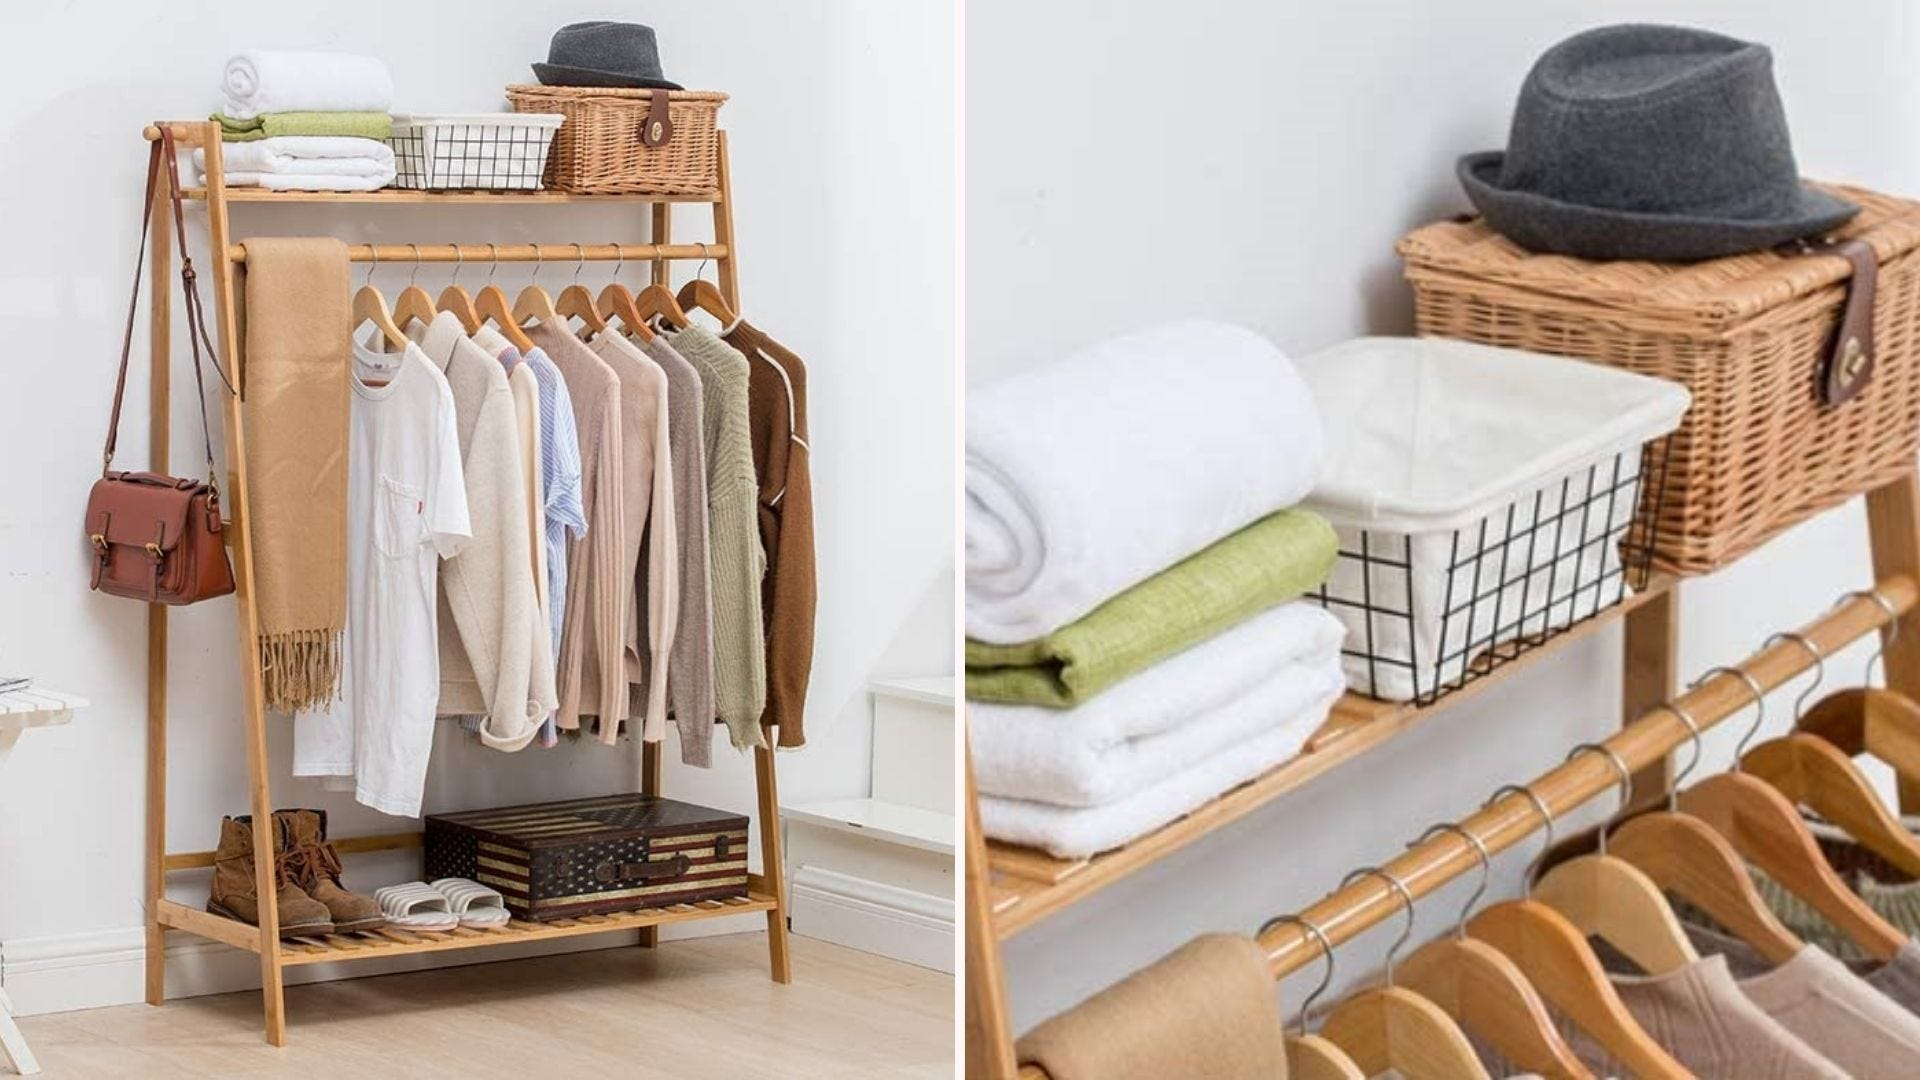 Bamboo wood clothing rack filled with shirts.